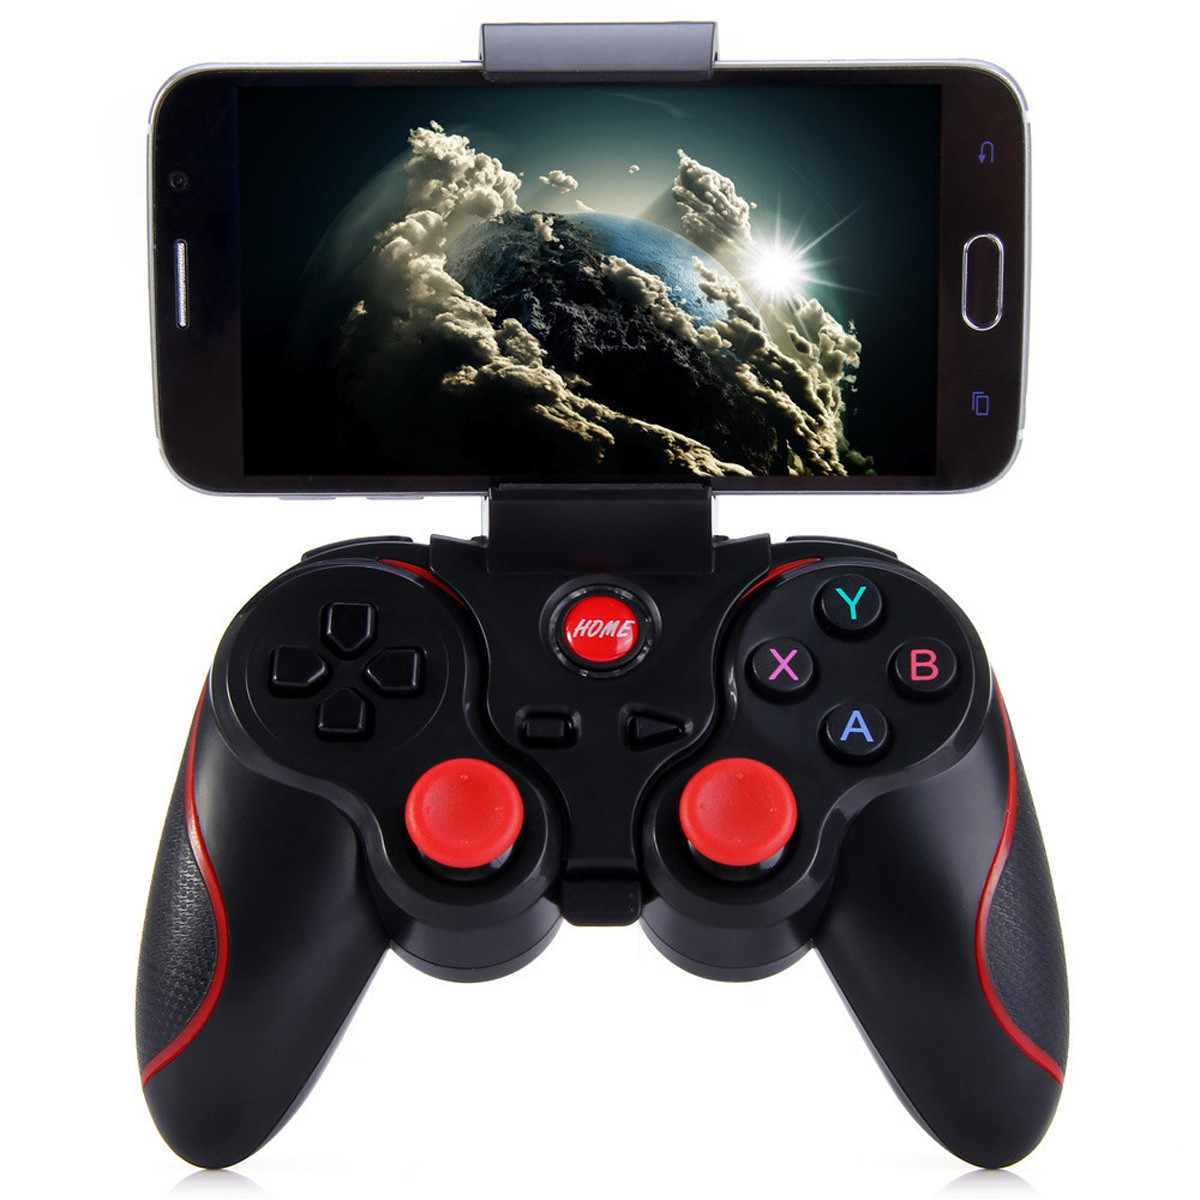 T3 Game <font><b>Controller</b></font> Wireless <font><b>Joystick</b></font> <font><b>Bluetooth</b></font> 3.0 Android <font><b>Gamepad</b></font> Gaming <font><b>Remote</b></font> Controle for PC Tablet Xiaomi Huawei Smartphone image